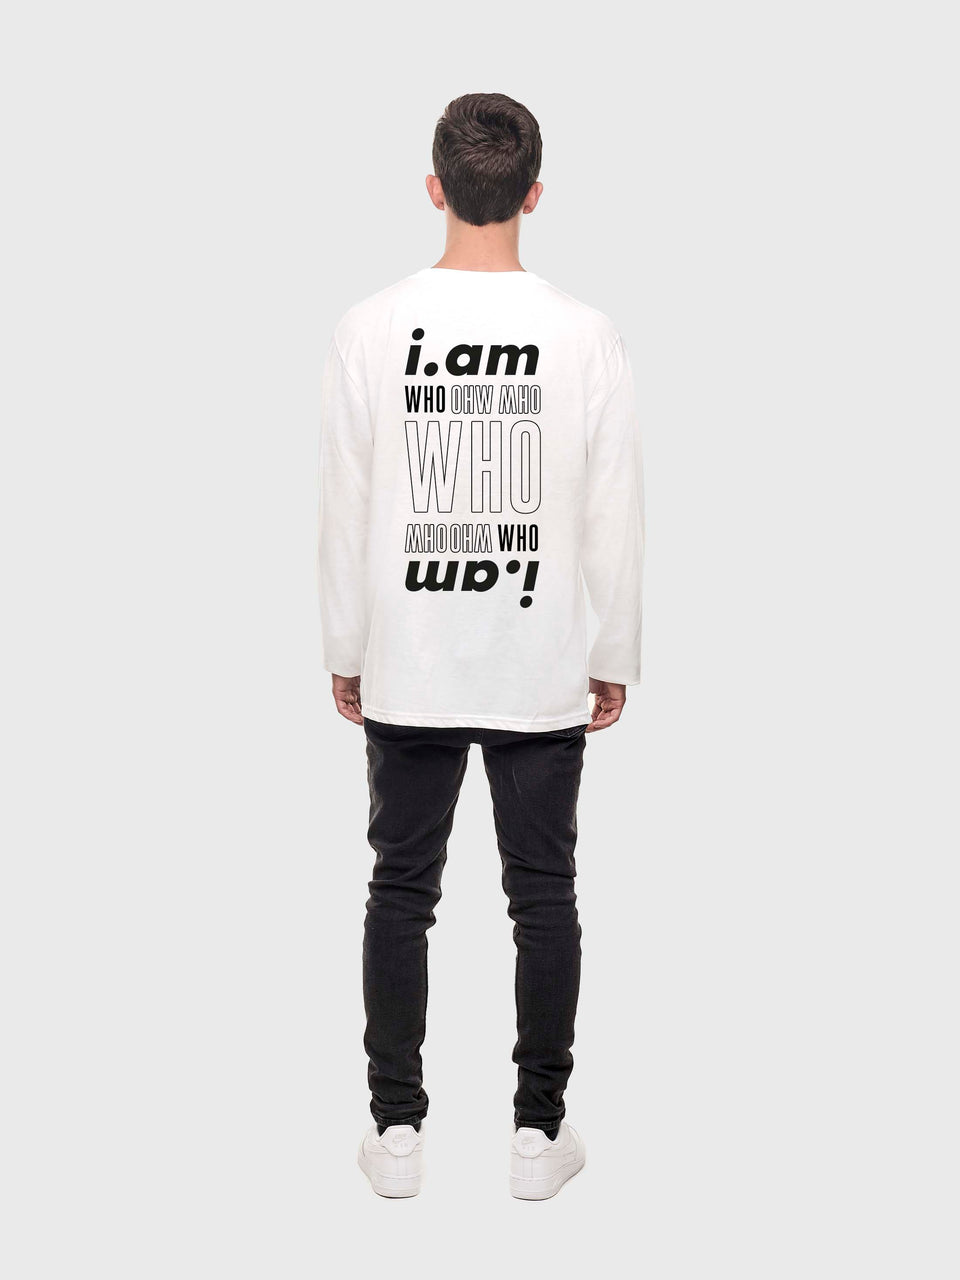 I am who I am - White - Unisex long sleeve T